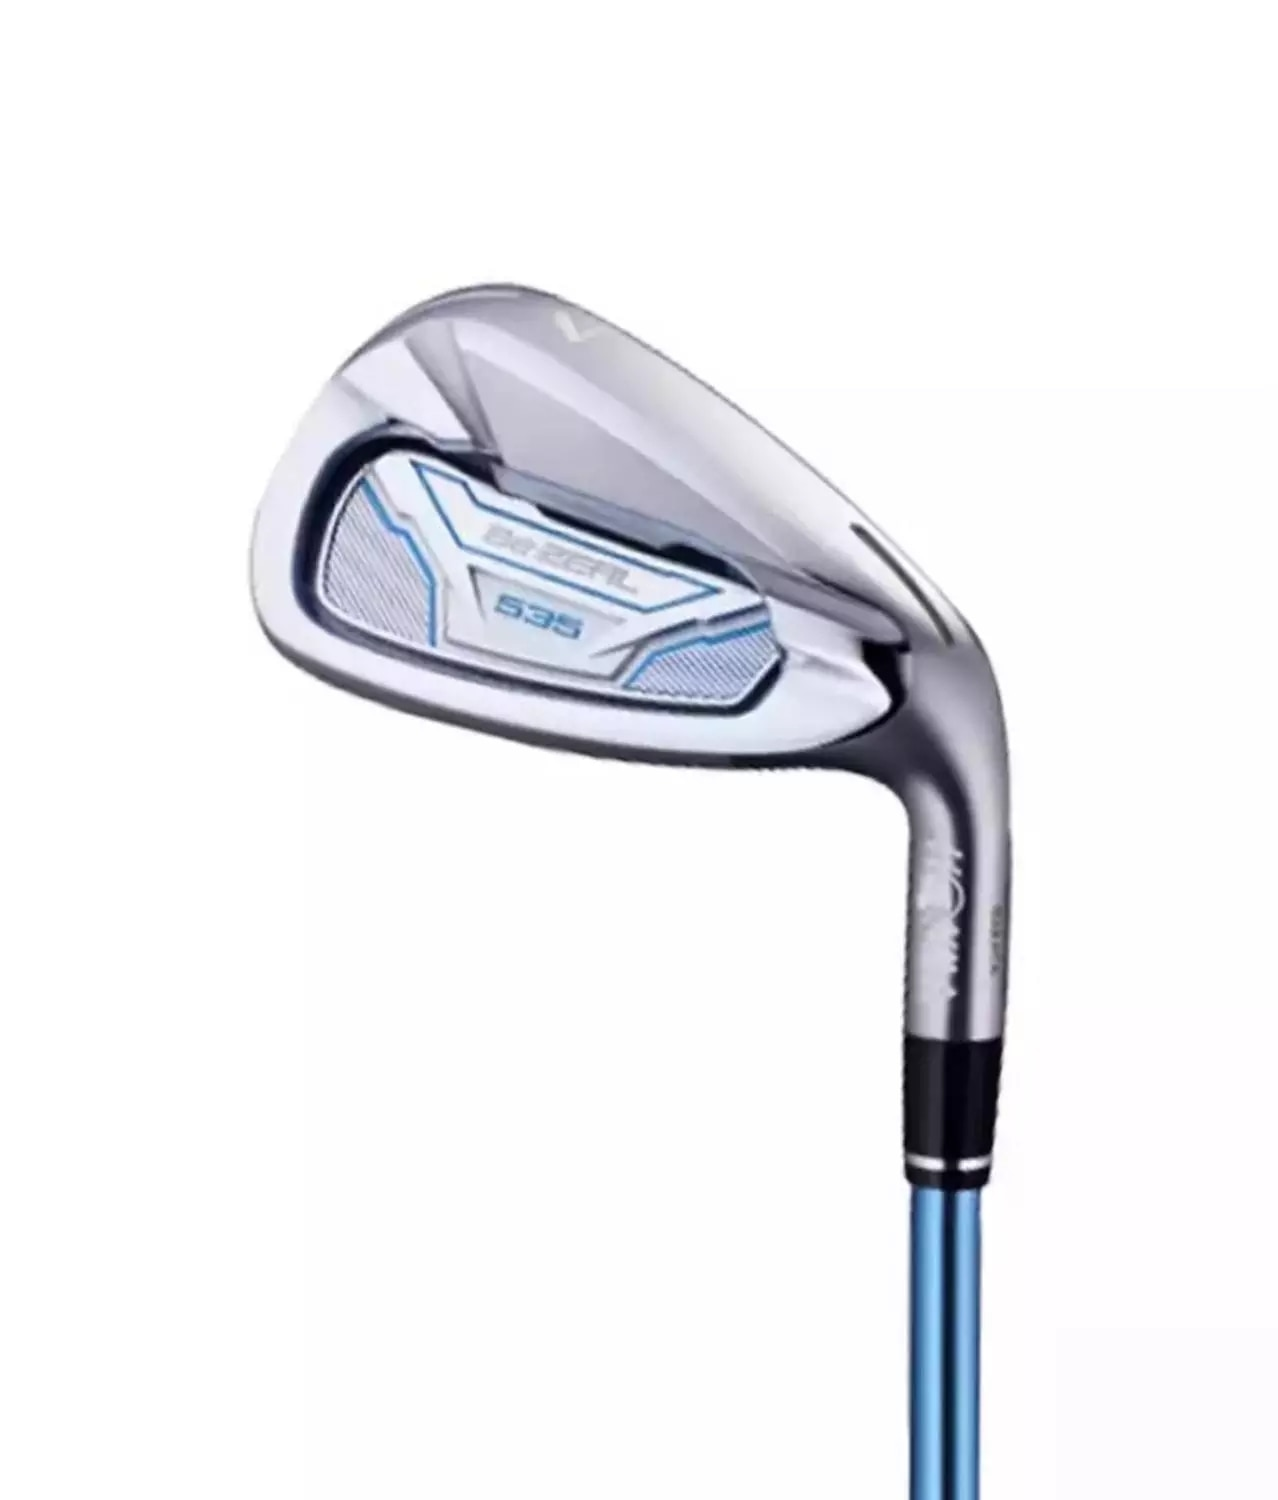 HONMA Golf Club Ladies Complete Iron Set HONMA BEZEAL 535 is suitable for junior and intermediate scholars, golf clubs, with cap